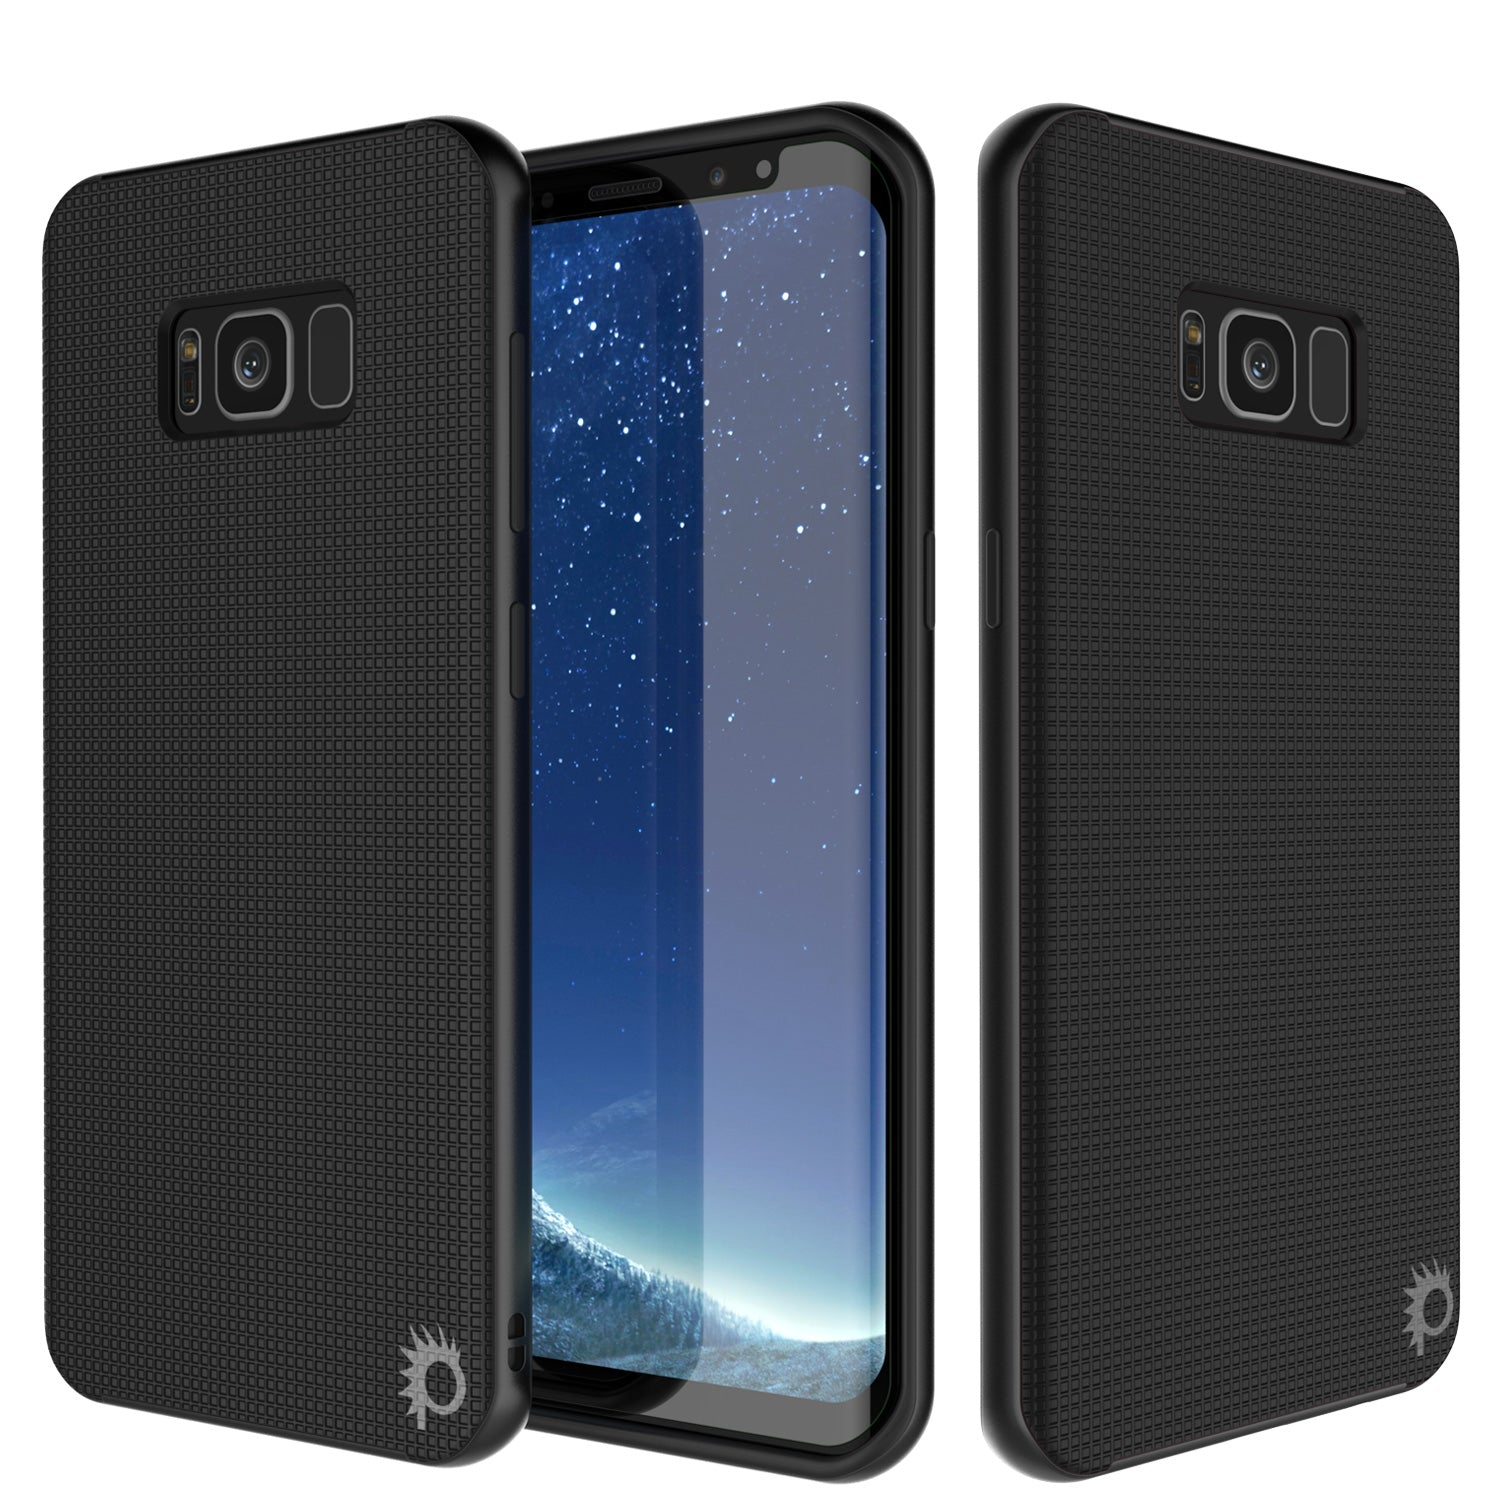 Galaxy S8 Case, PunkCase Stealth Black Series Hybrid 3-Piece Shockproof Dual Layer Cover